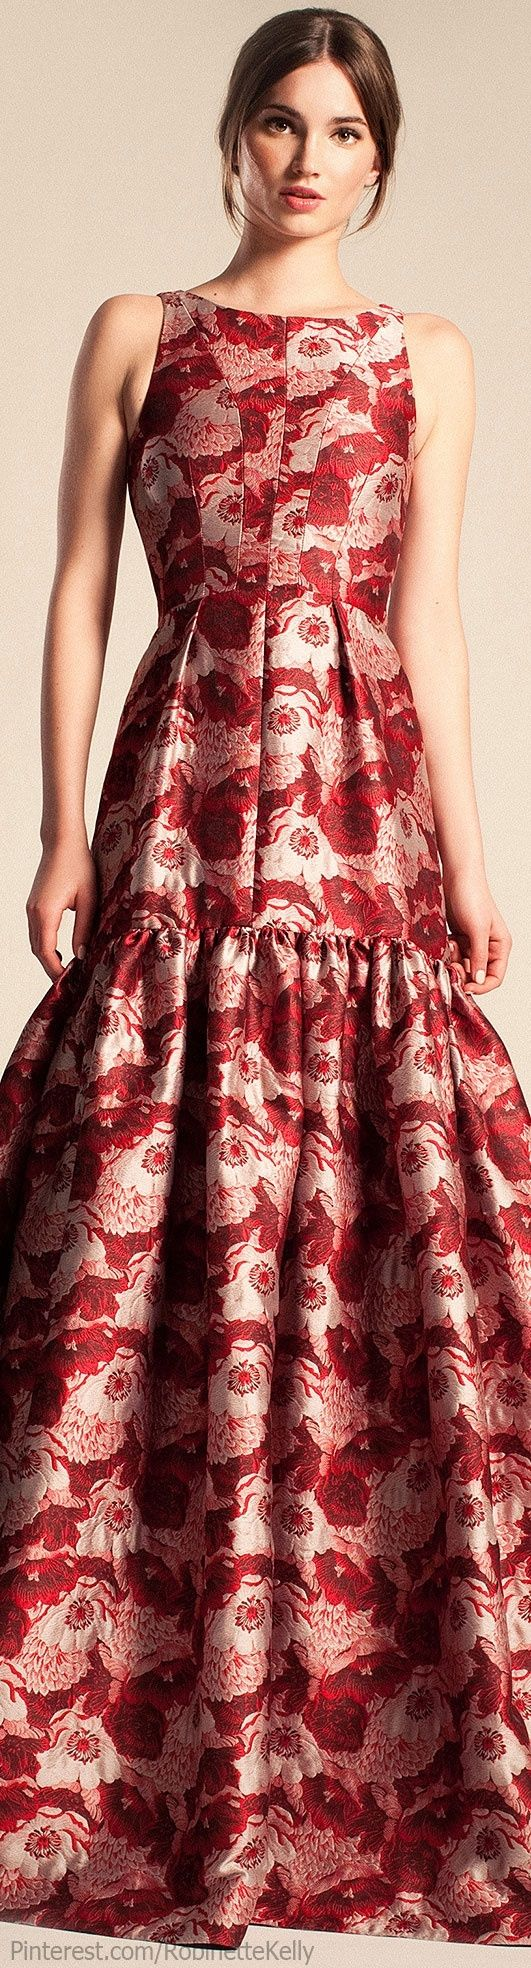 Temperley London | Resort 2014 red dress women fashion outfit clothing style apparel @roressclothes closet ideas